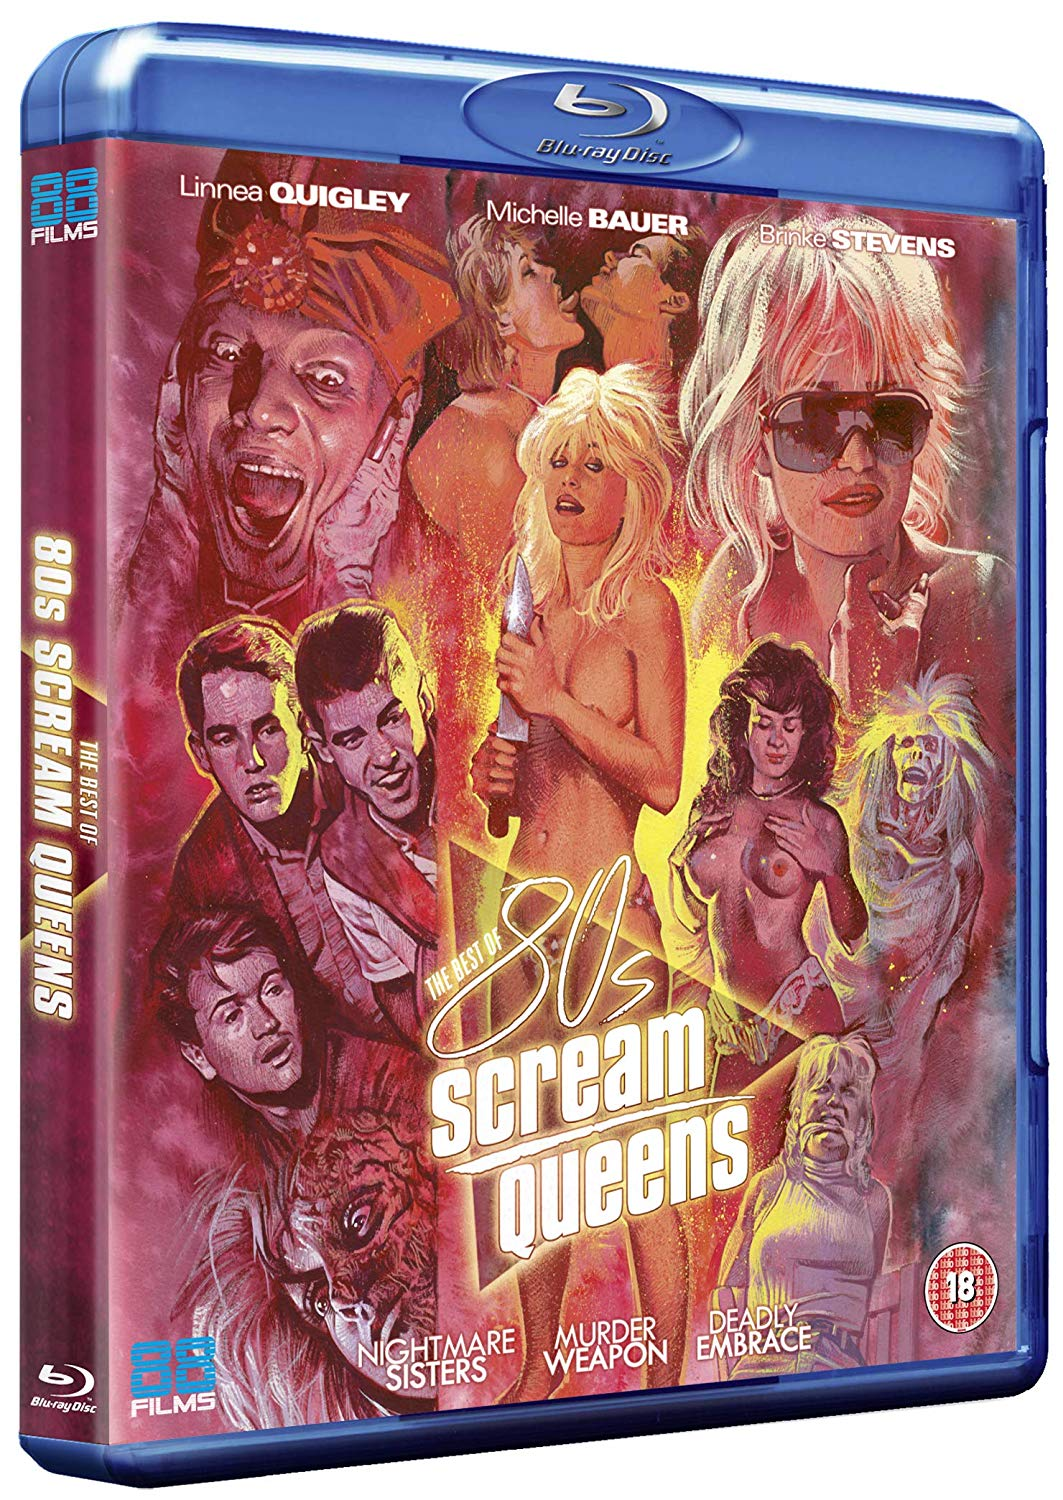 The Best of 80's Scream Queens UK Blu-Ray Collection